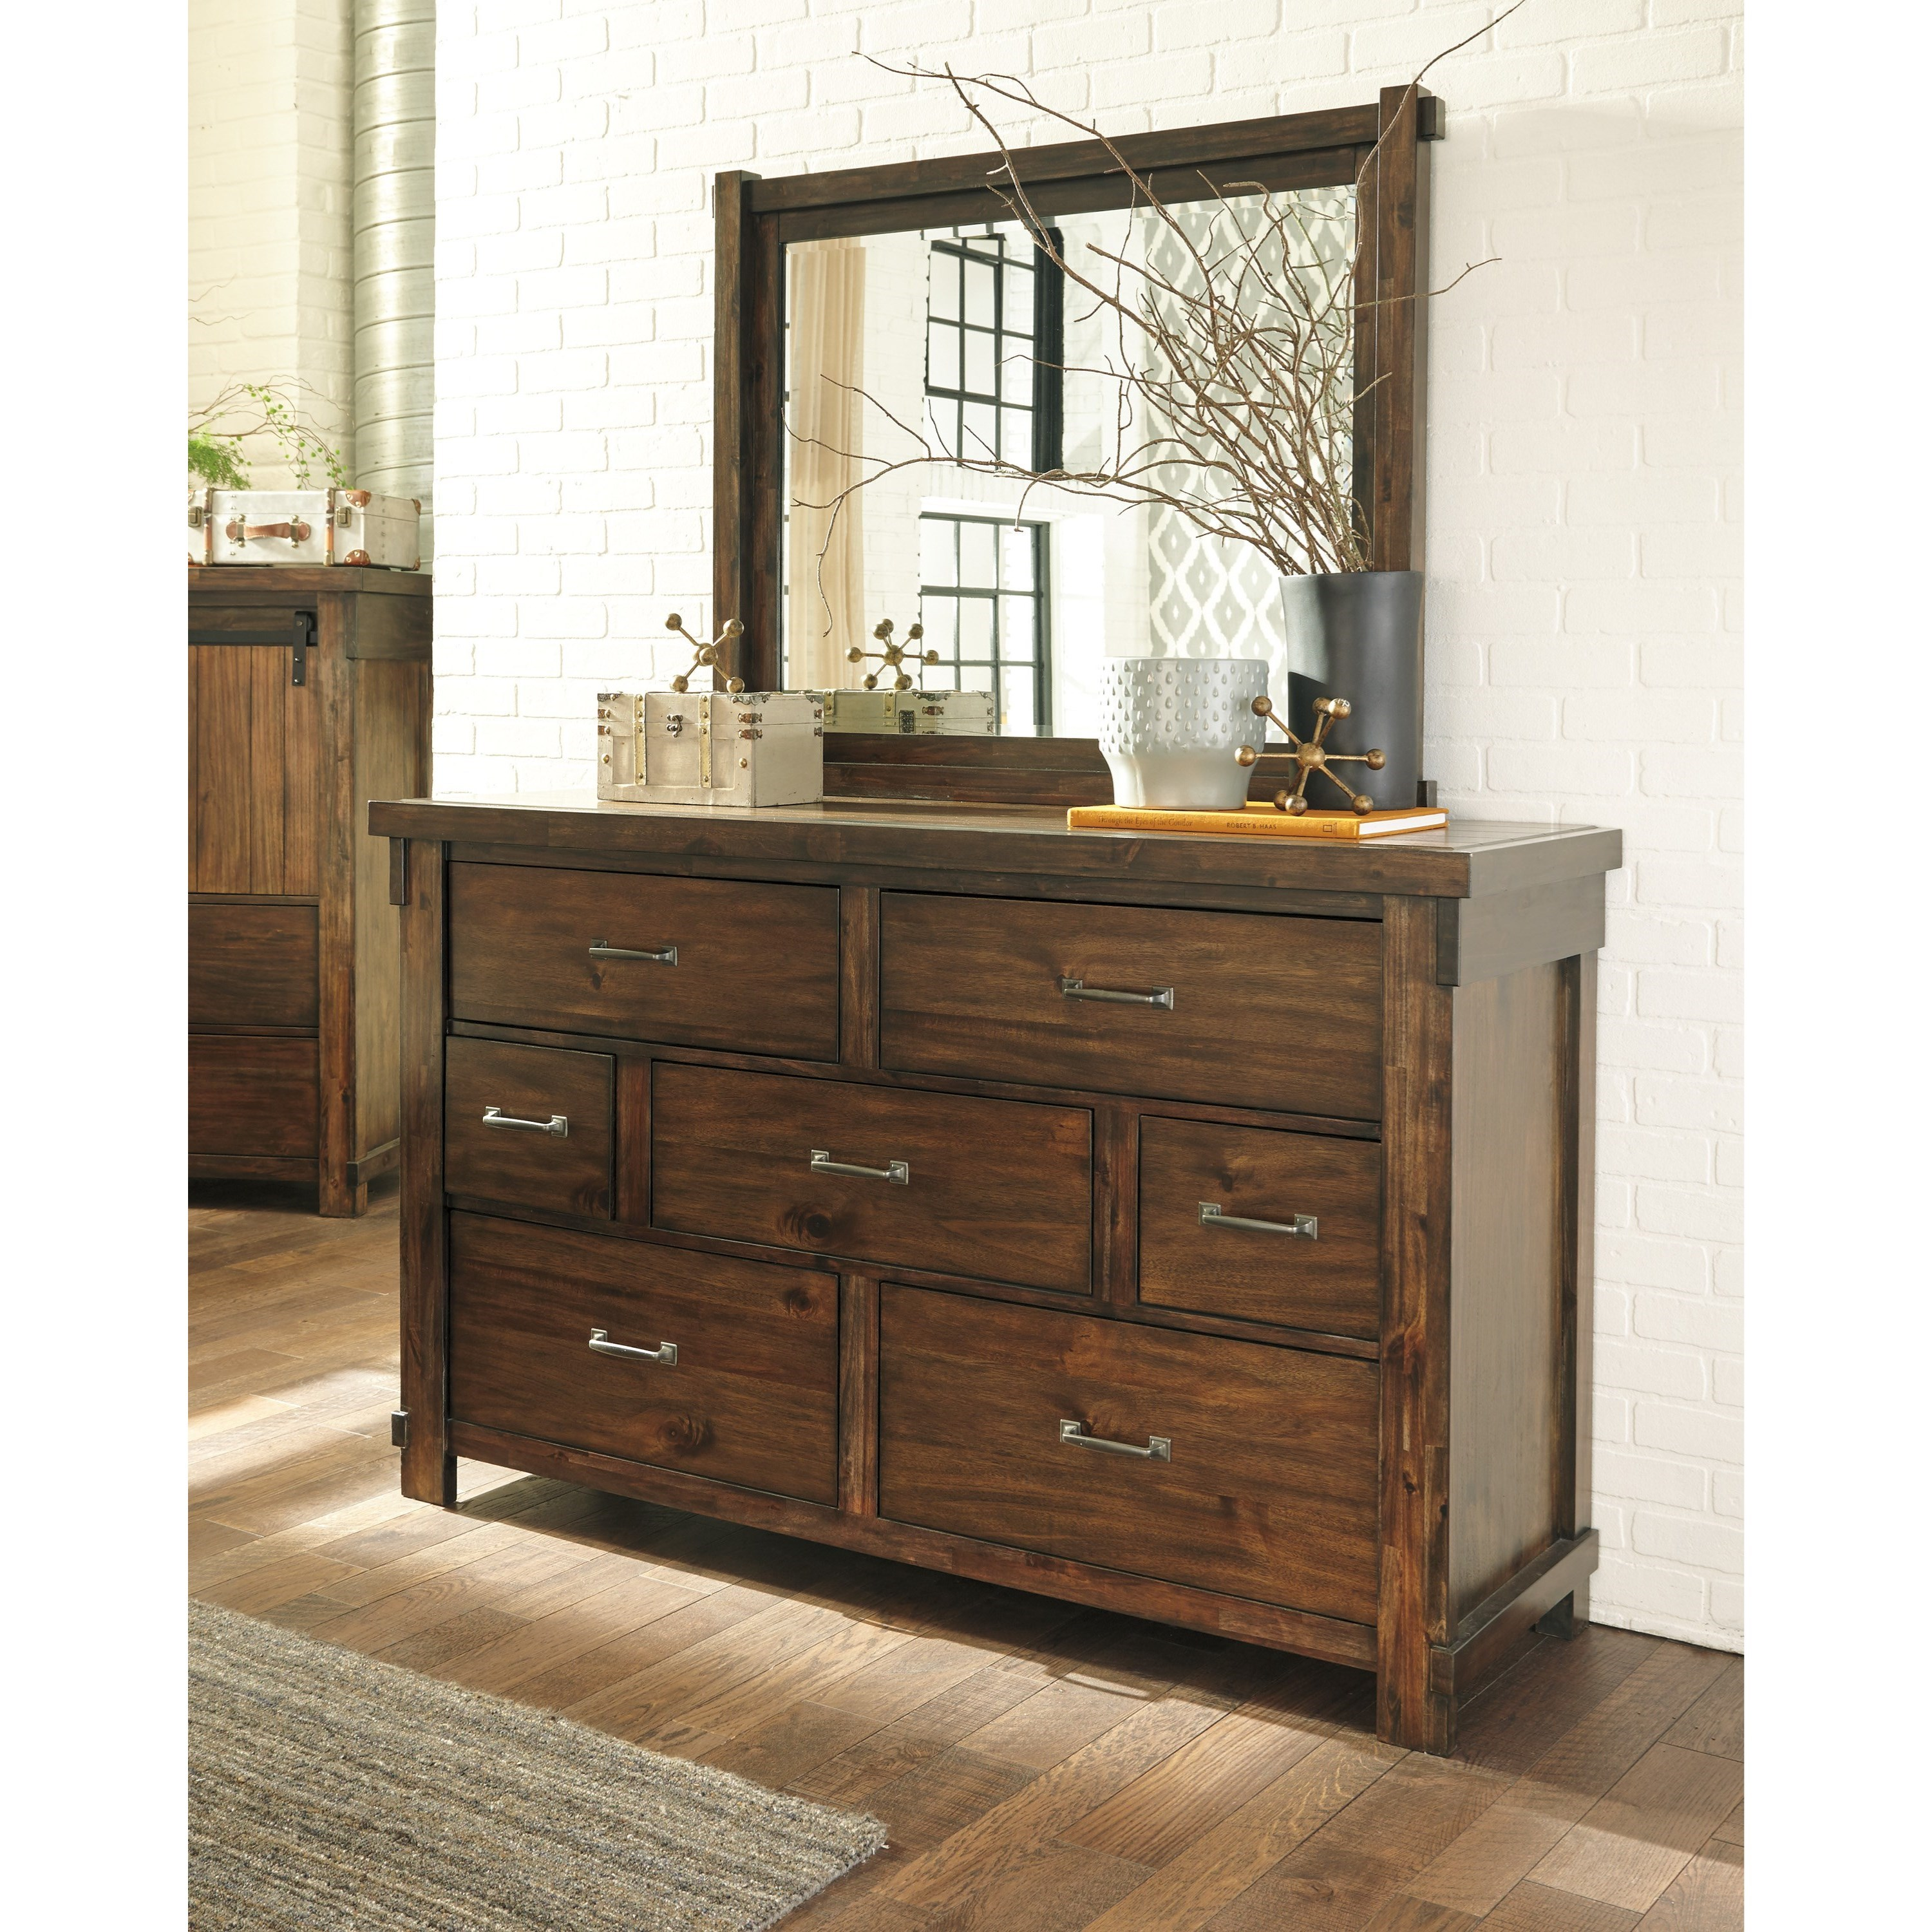 Signature Design By Ashley Lakeleigh B718 31 Dresser With 7 Drawers Becker Furniture World